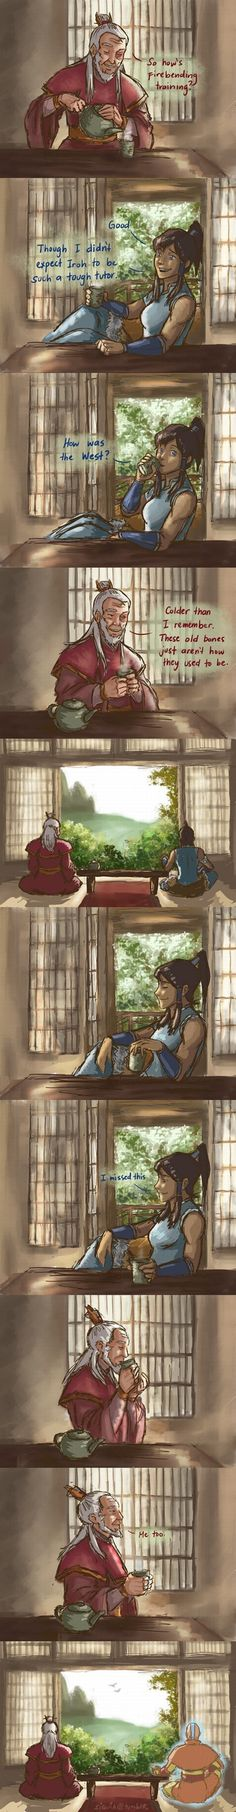 "Missed This."" [Comic] I missed this . Avatar Kora having tea with Zuko ≈Avatar The Last Airbender≈ ≈Legend of Korra≈I missed this . Avatar Kora having tea with Zuko ≈Avatar The Last Airbender≈ ≈Legend of Korra≈ Avatar Aang, Avatar Airbender, Team Avatar, Avatar Funny, Iroh, Legend Of Aang, Funny Images, Funny Pictures, Funny Pics"